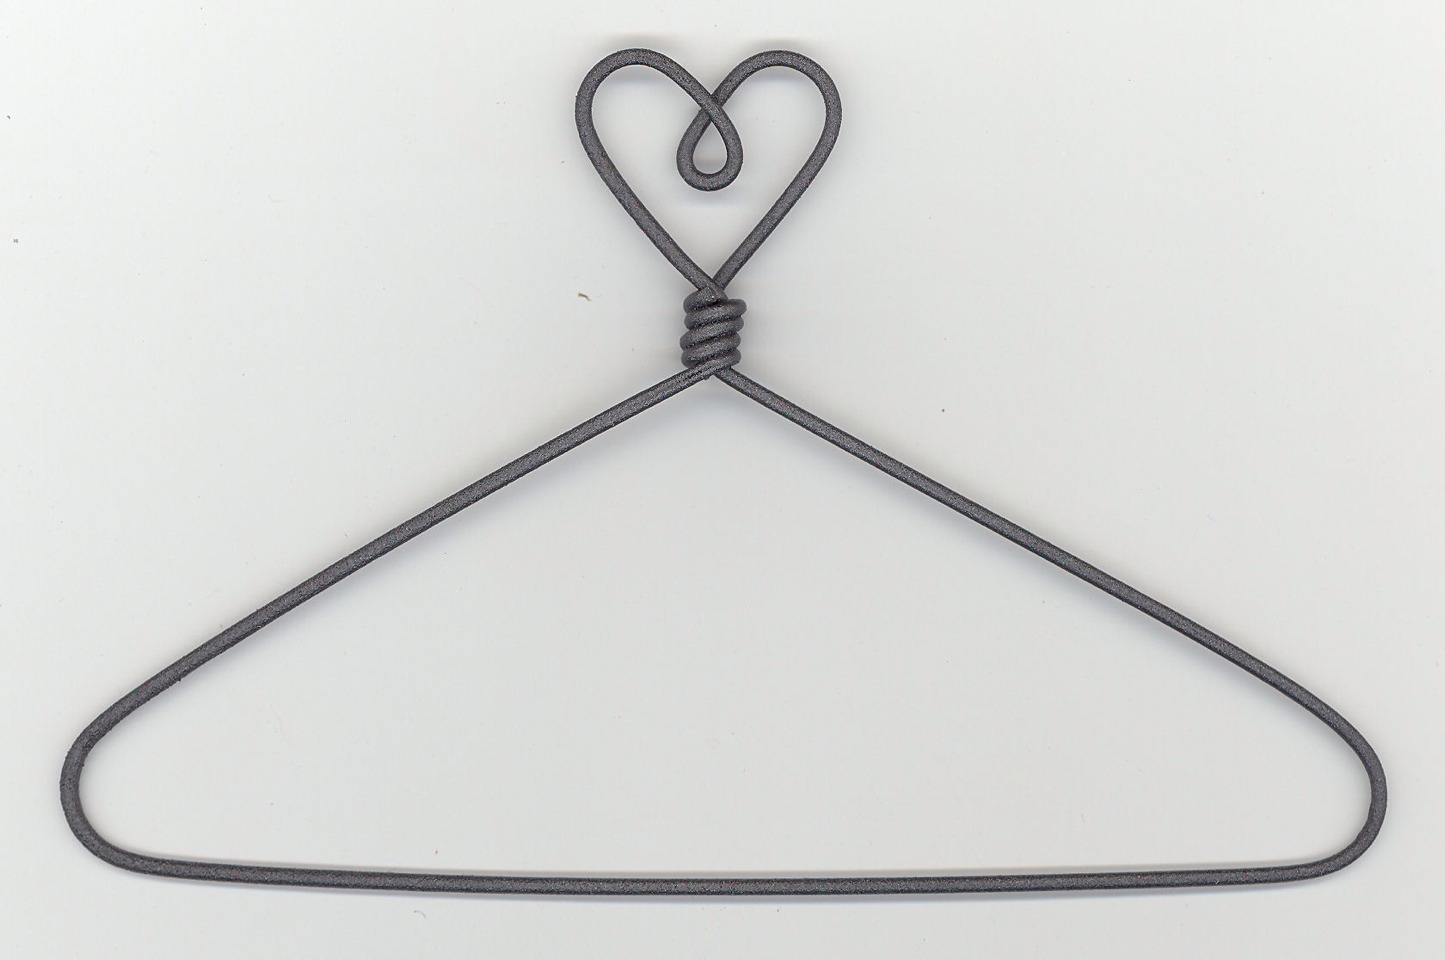 Here's a good use for those wire hangers. They fix static cling! Remove excess static by running a clean wire hanger across the areas where your clothing clings.